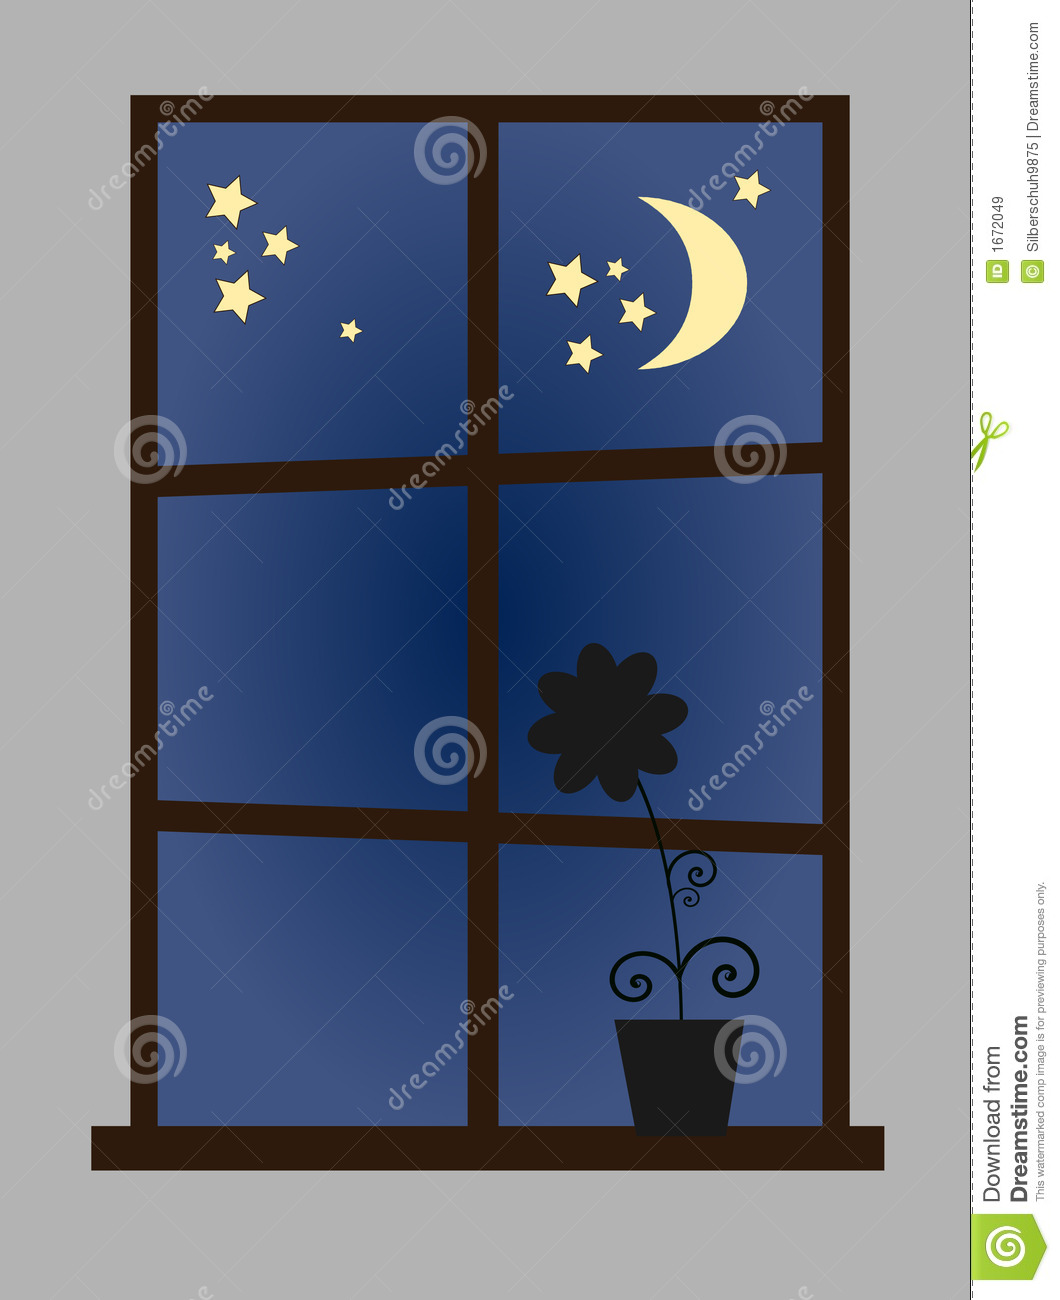 Room Design App For Windows Window At Night Time Royalty Free Stock Images Image